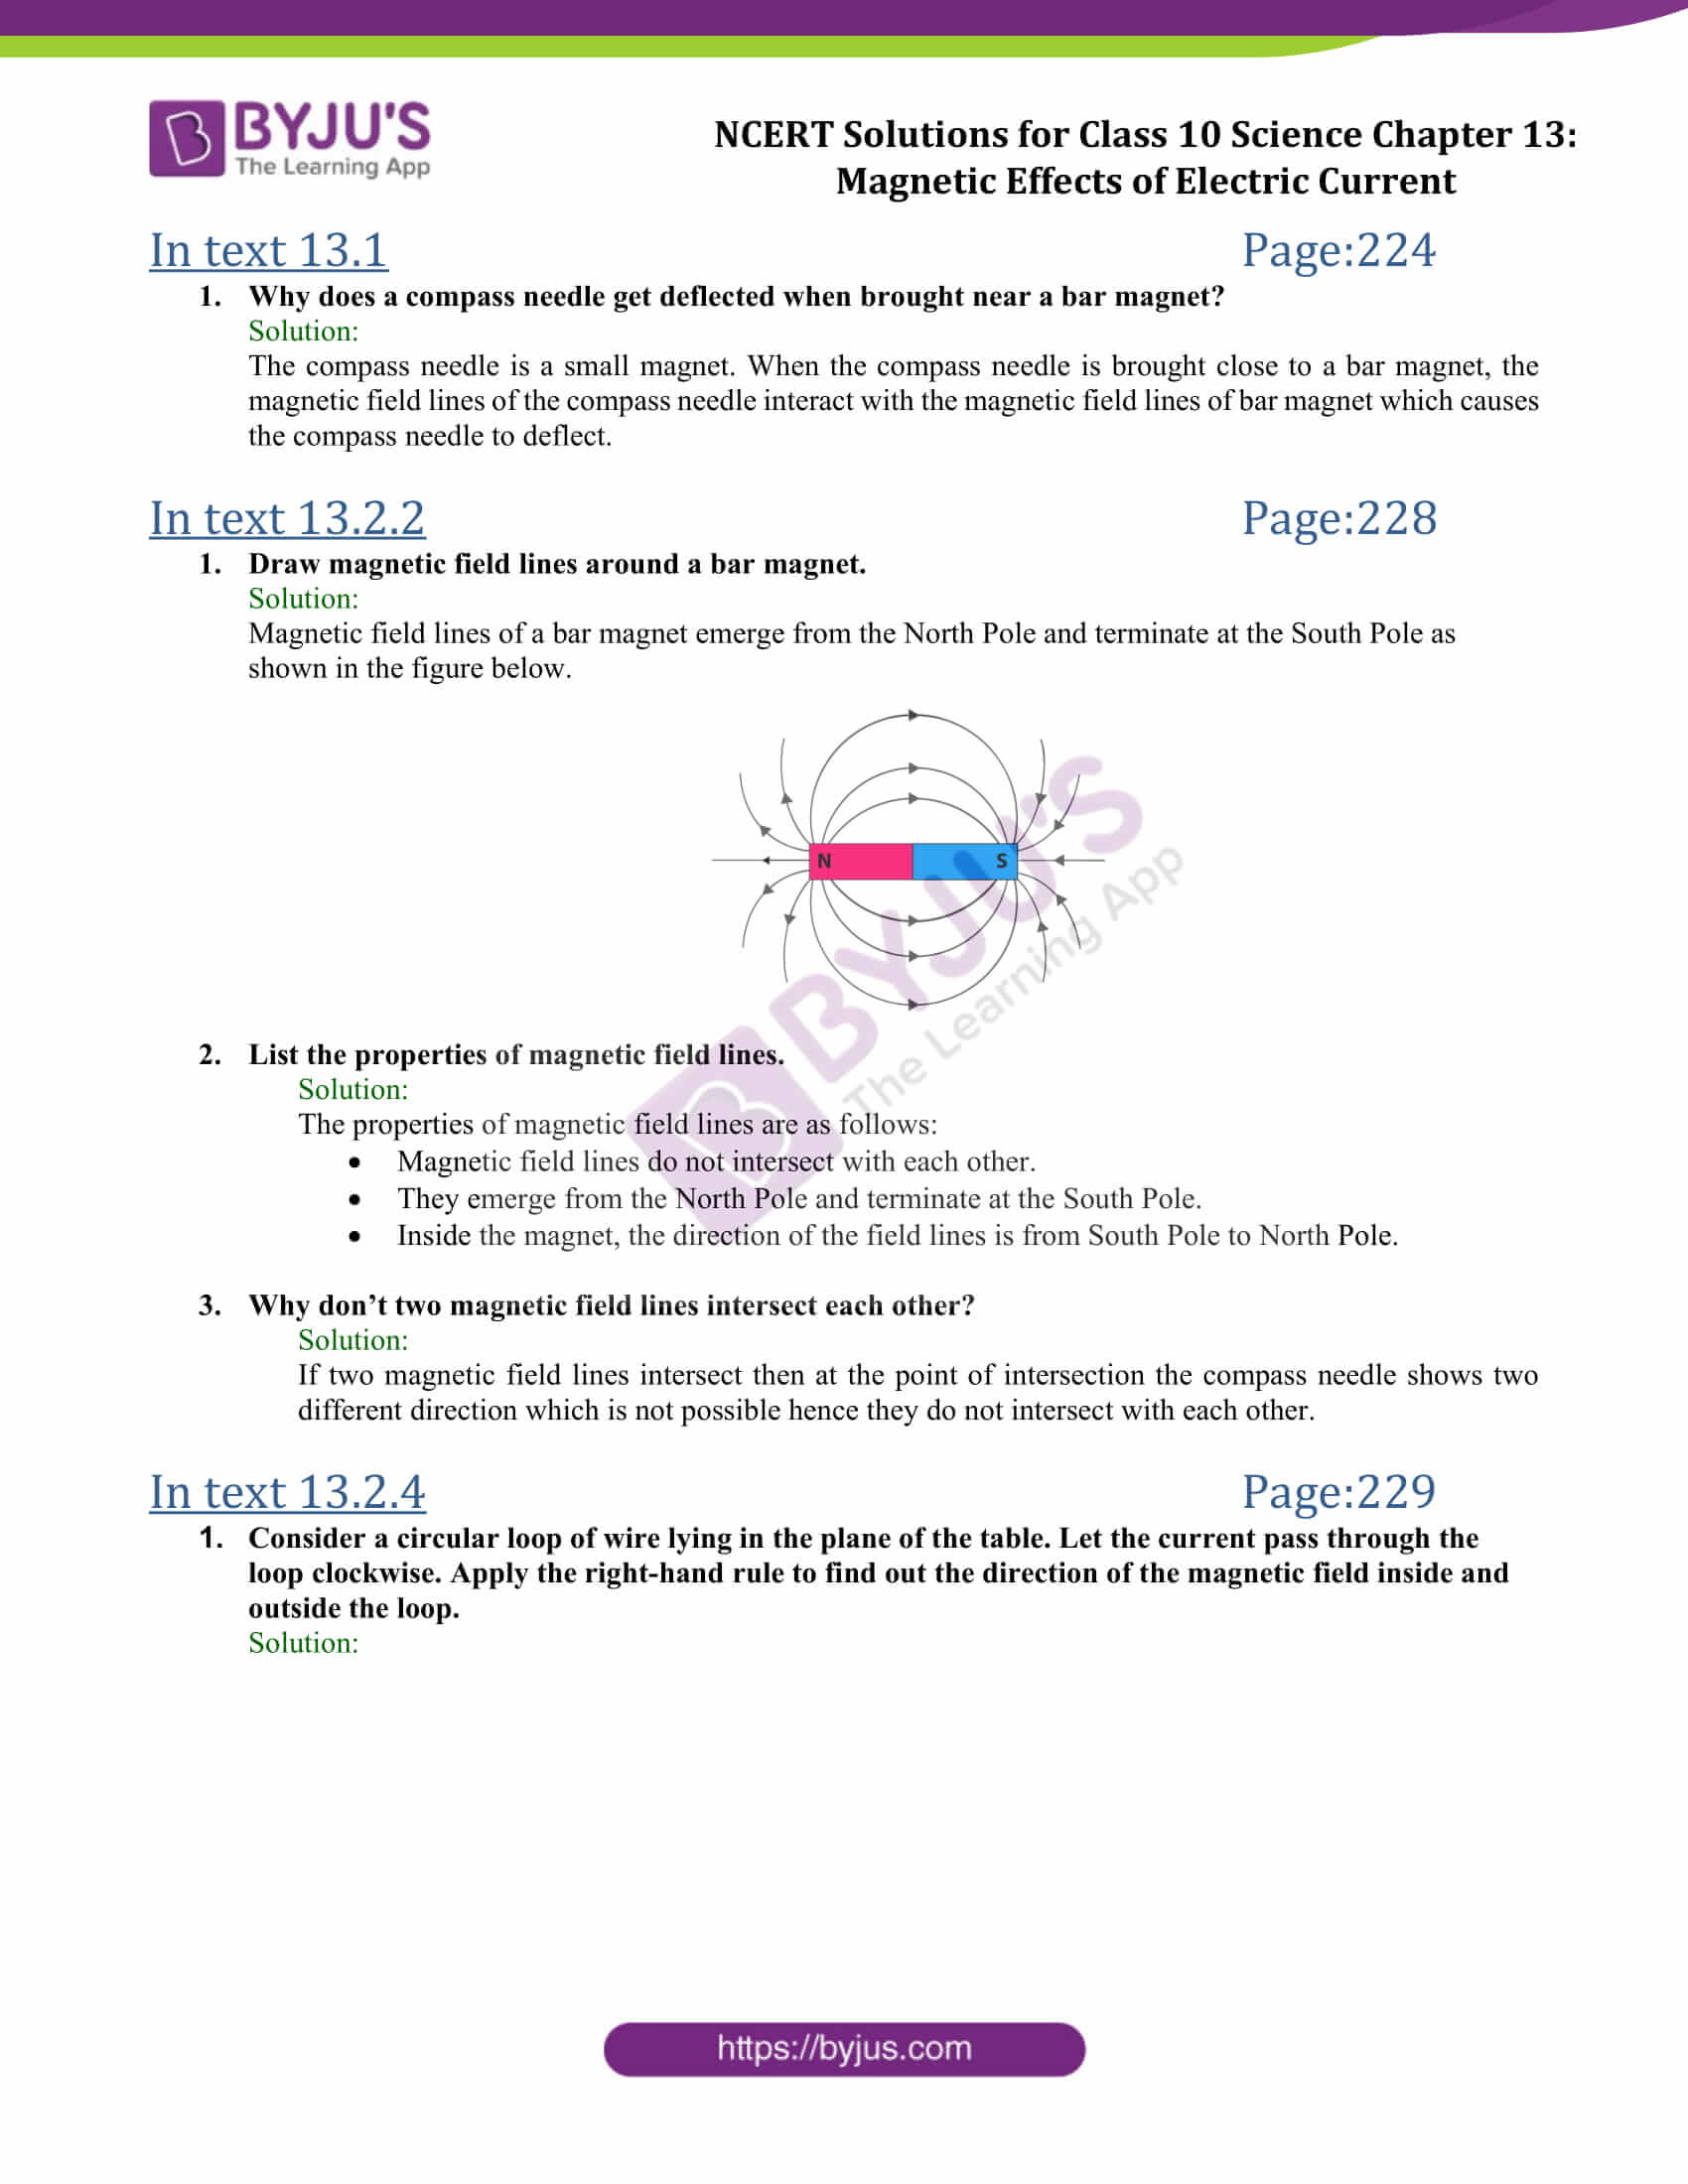 NCERT Solutions Class 10 Science Chapter 13 Magnetic Effects